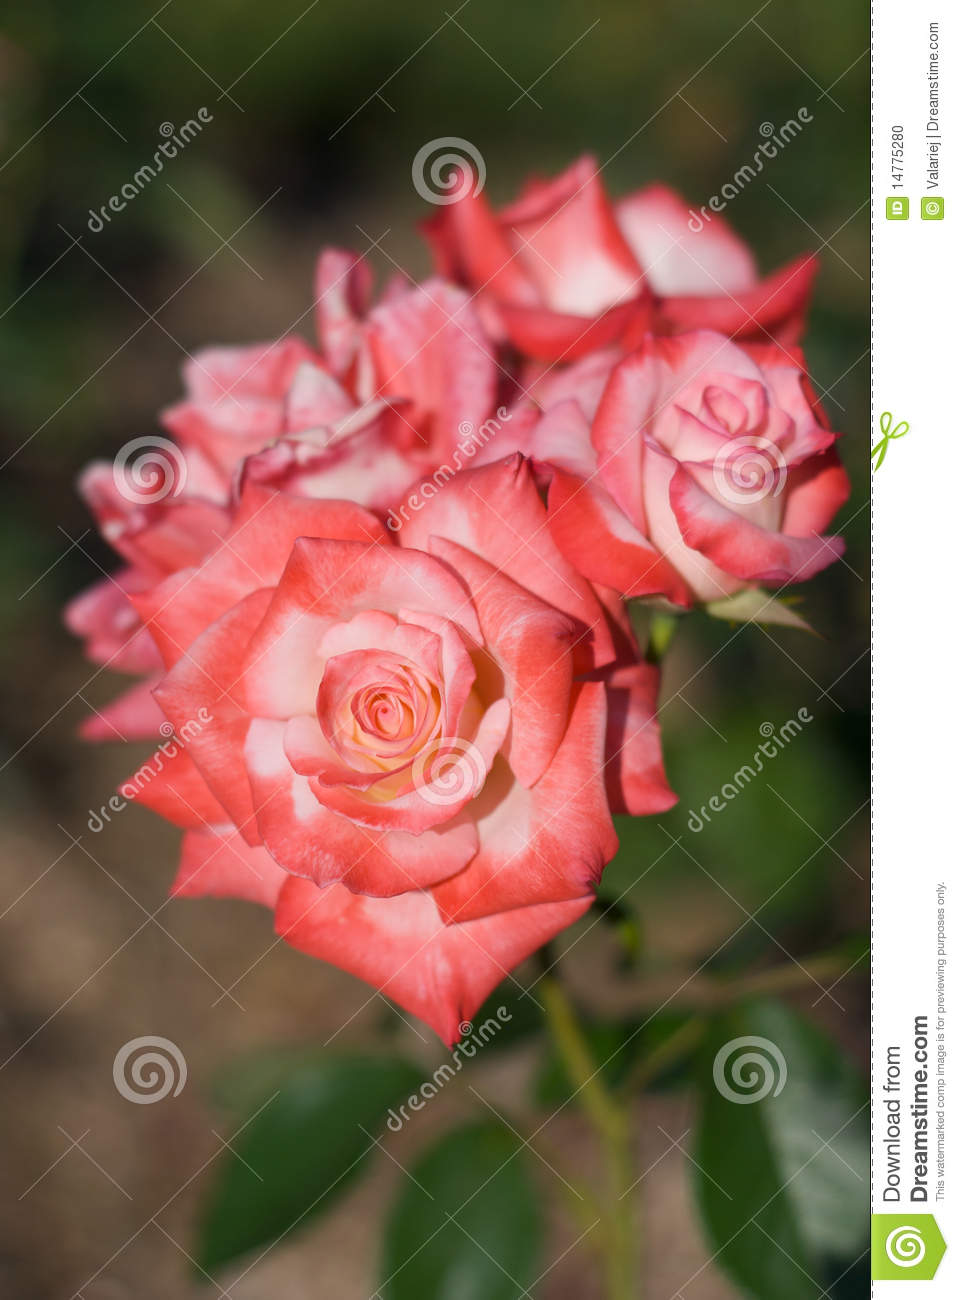 Durgesh 3d Name Wallpaper The Gallery For Gt Pink Rose Tattoo